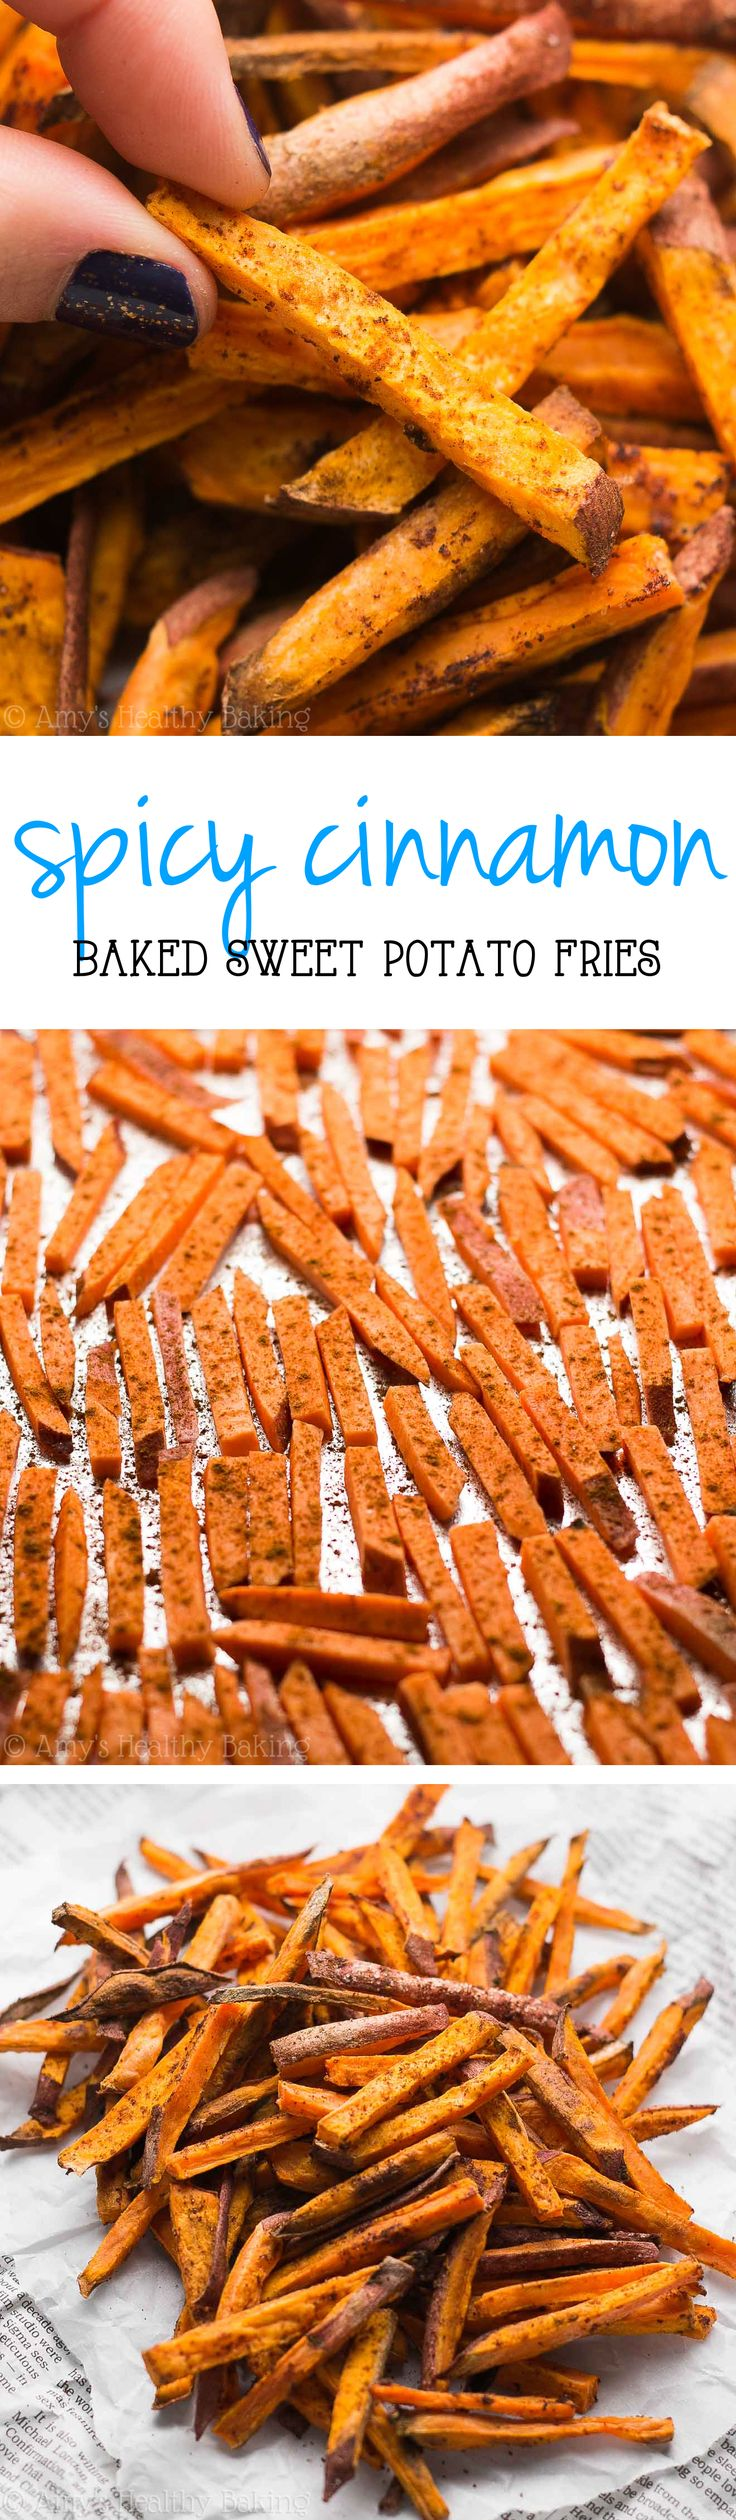 The absolute BEST baked sweet potato fries! You won't be able to stop eating these! Just 4 ingredients & so easy!